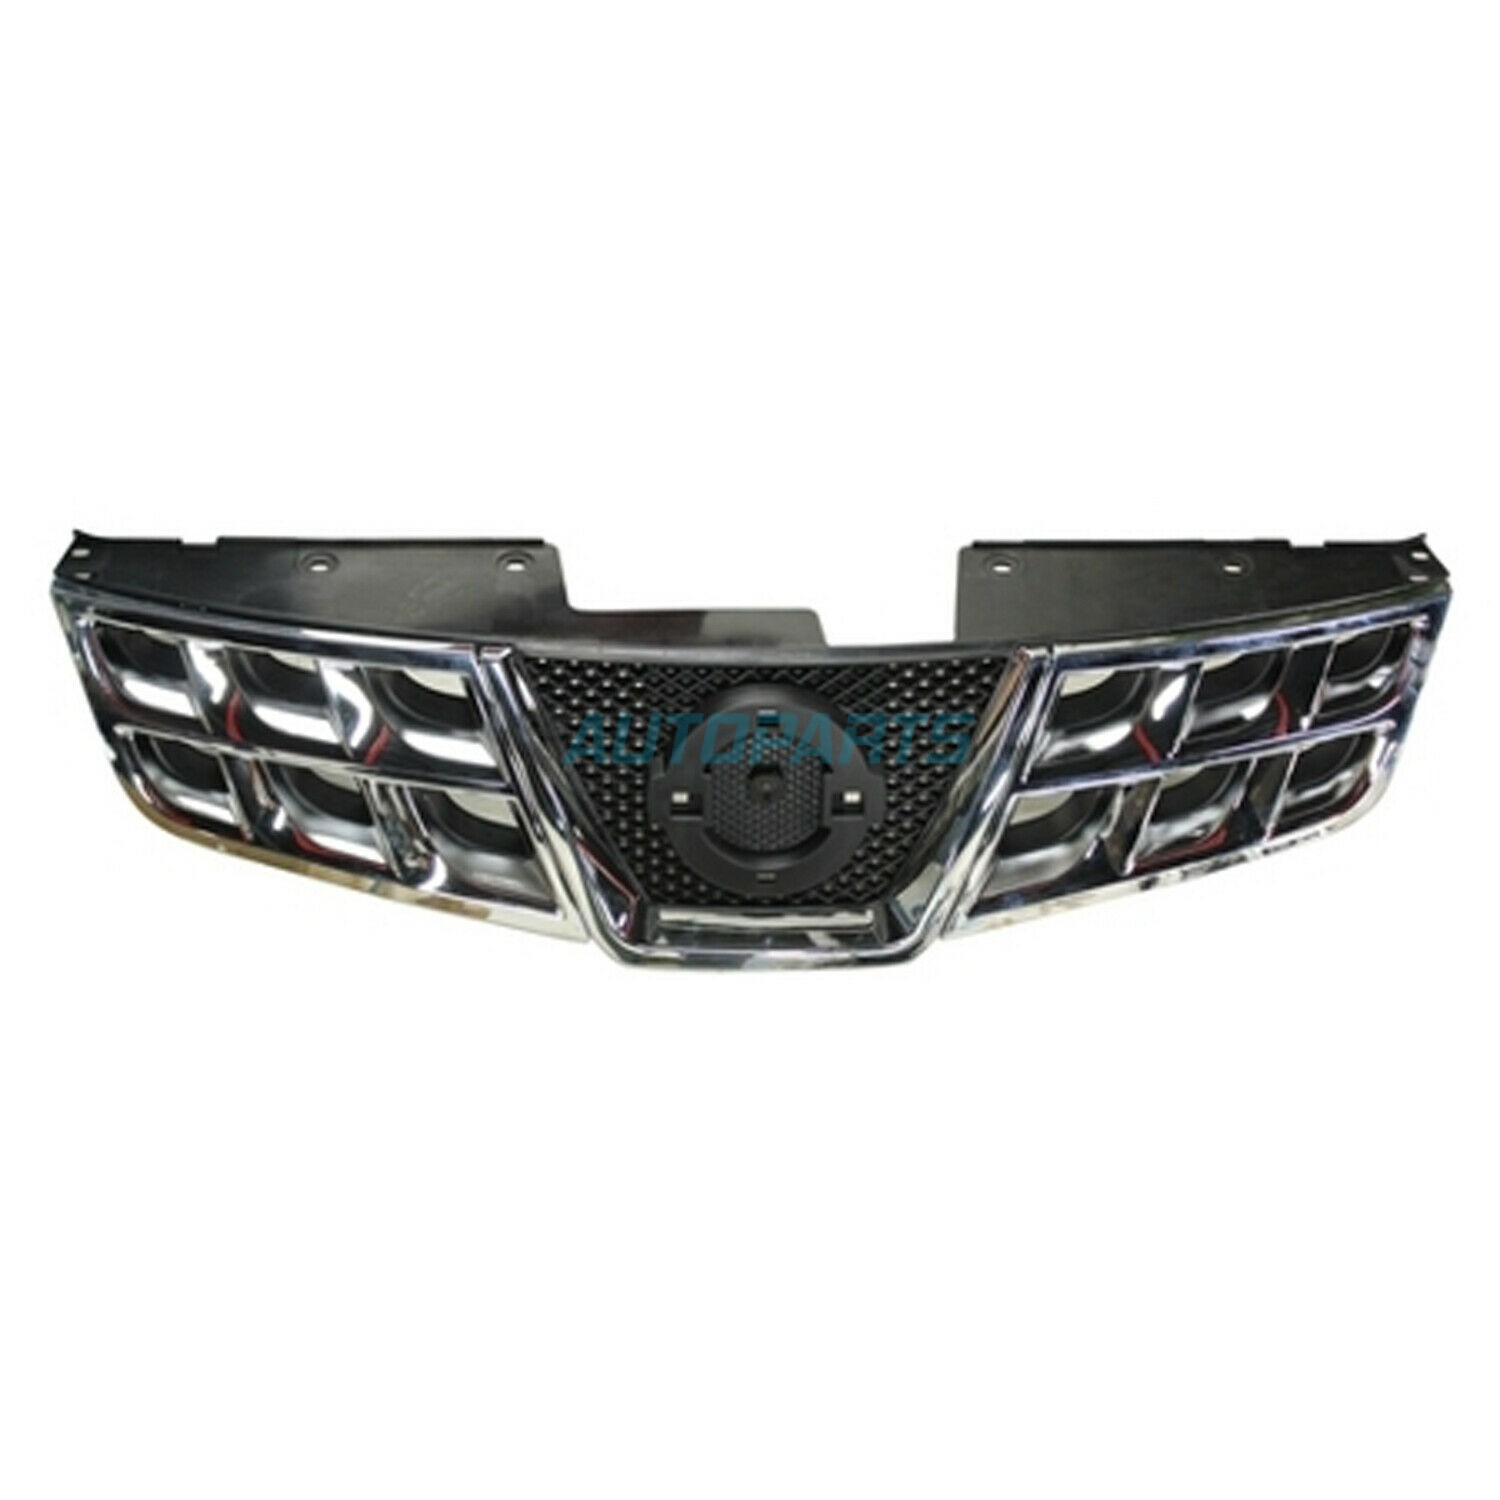 New Front Grille Chrome/black Fits 2011-2013 Nissan Rogue NI1200249